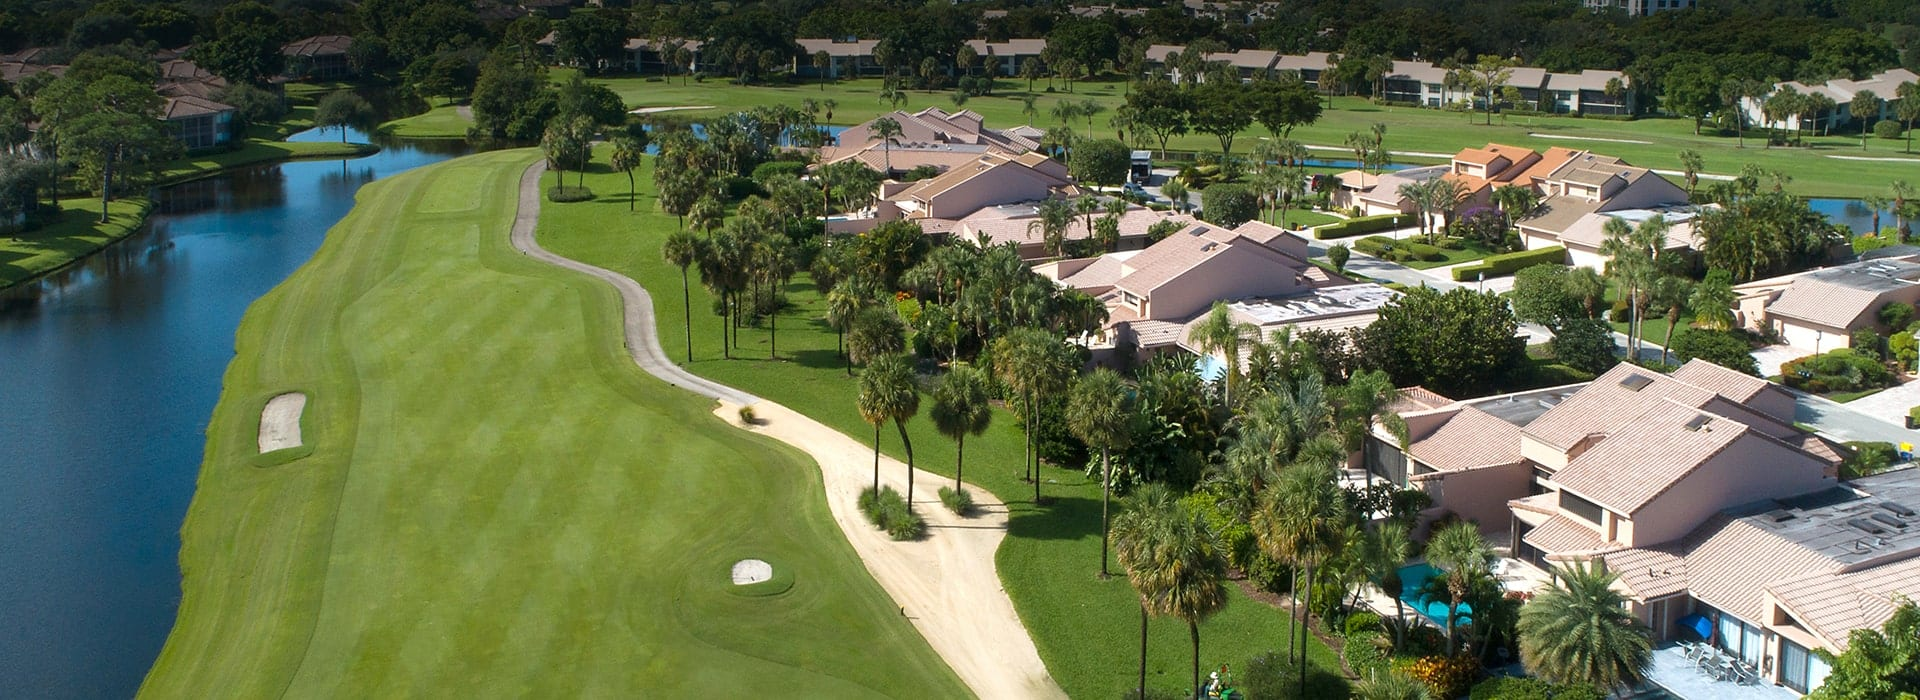 Planters Point attached townhomes with private pools along the golf course